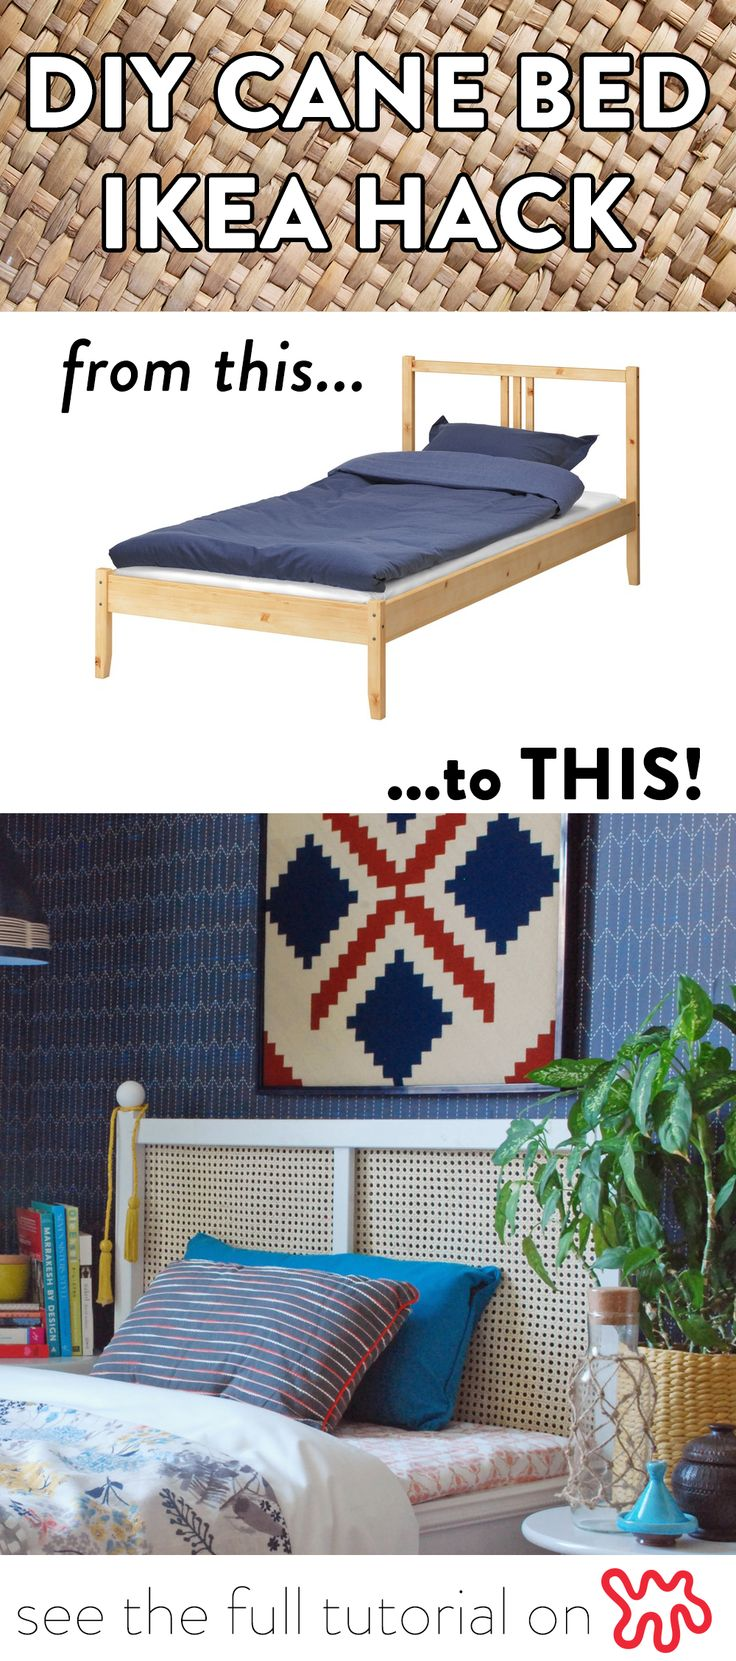 This project is quite easy to pull off — all it takes is a trip to IKEA for a $40 FJELLSE bed, followed by a hardware store run and then some patient DIY moves.